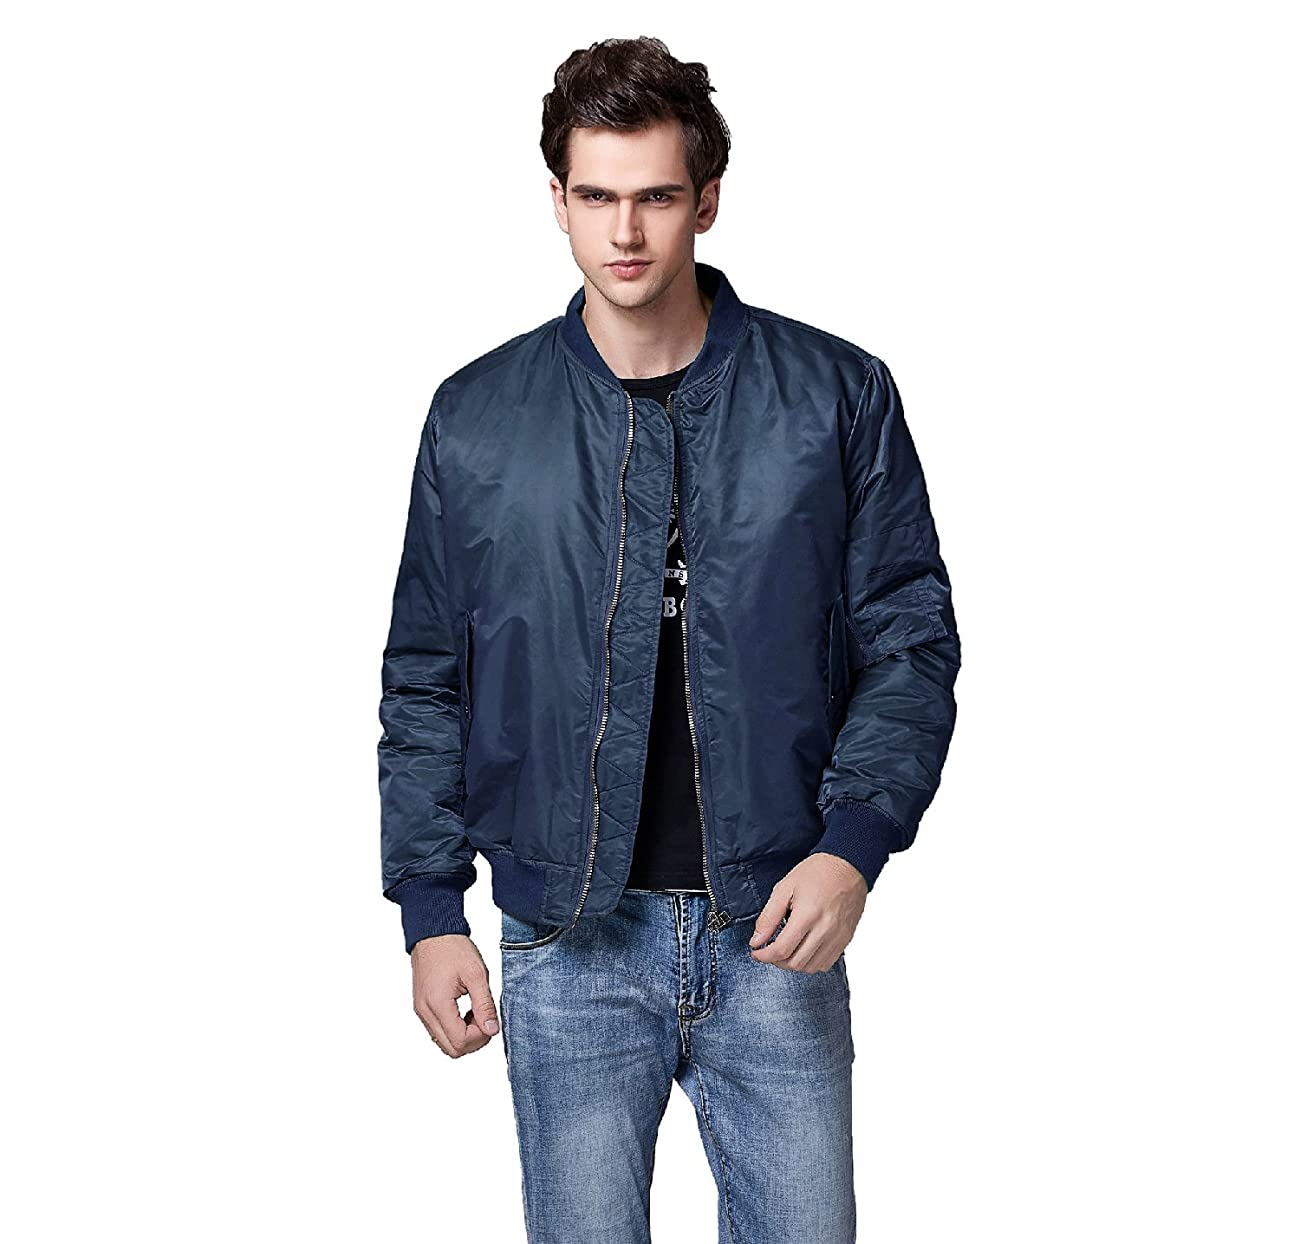 Neo-wows Men's Bomber Flight Jacket Thick 0